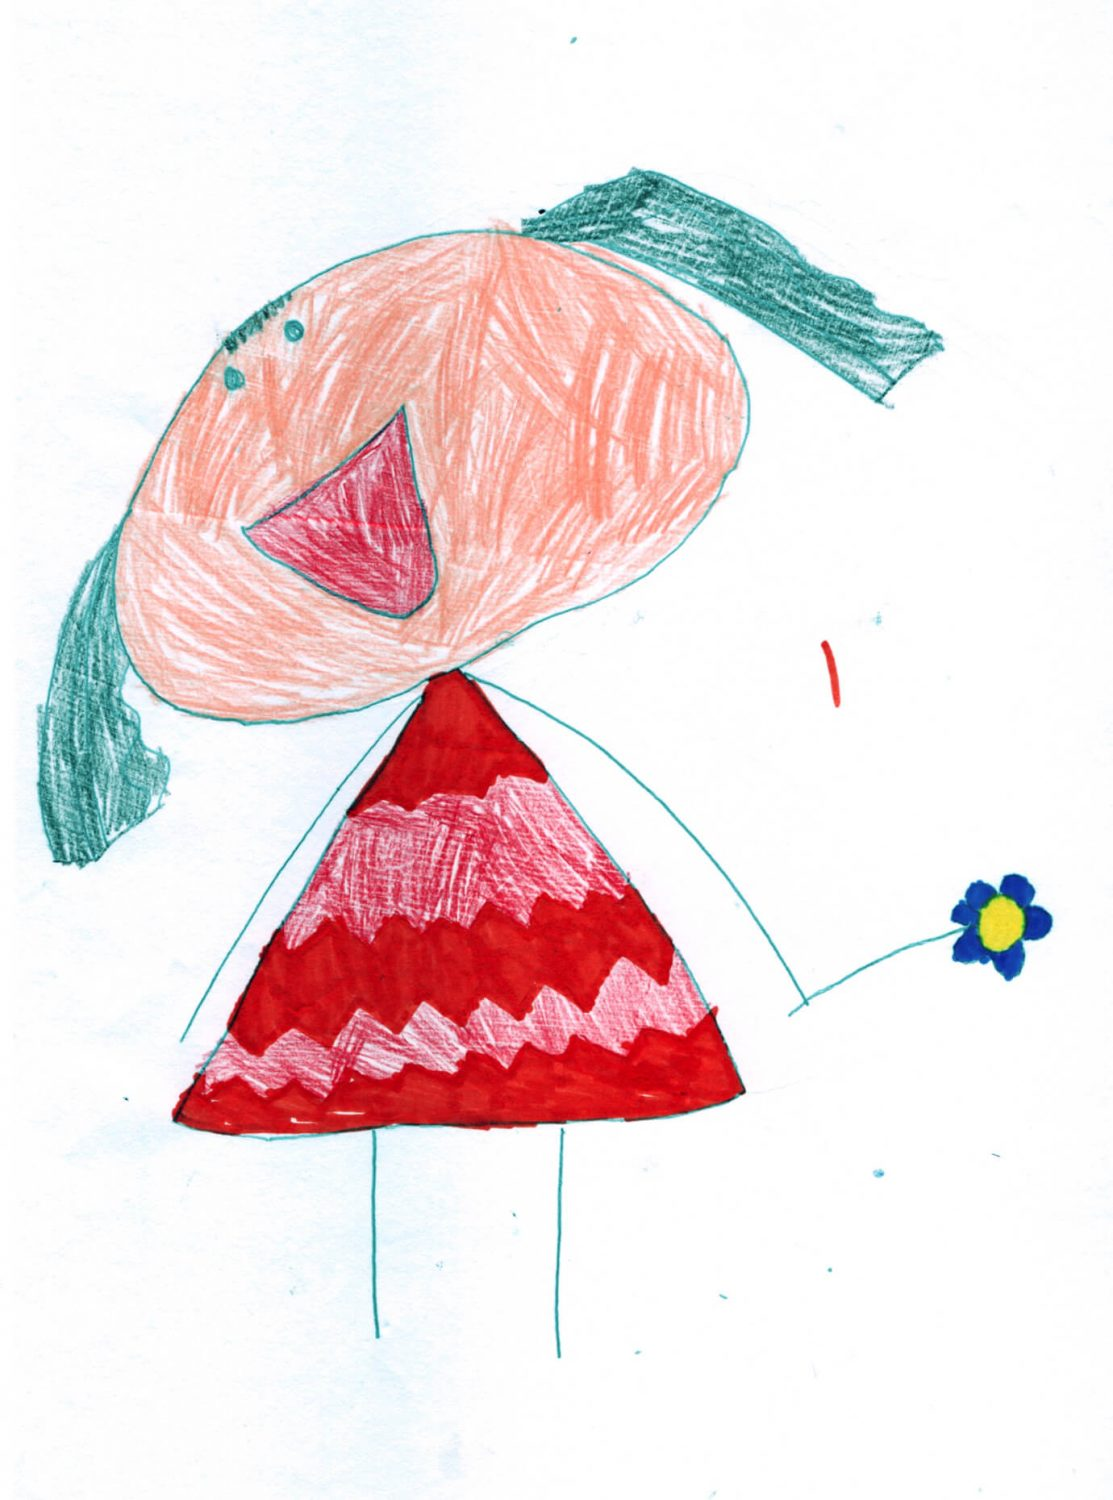 Anna's daughter's drawing